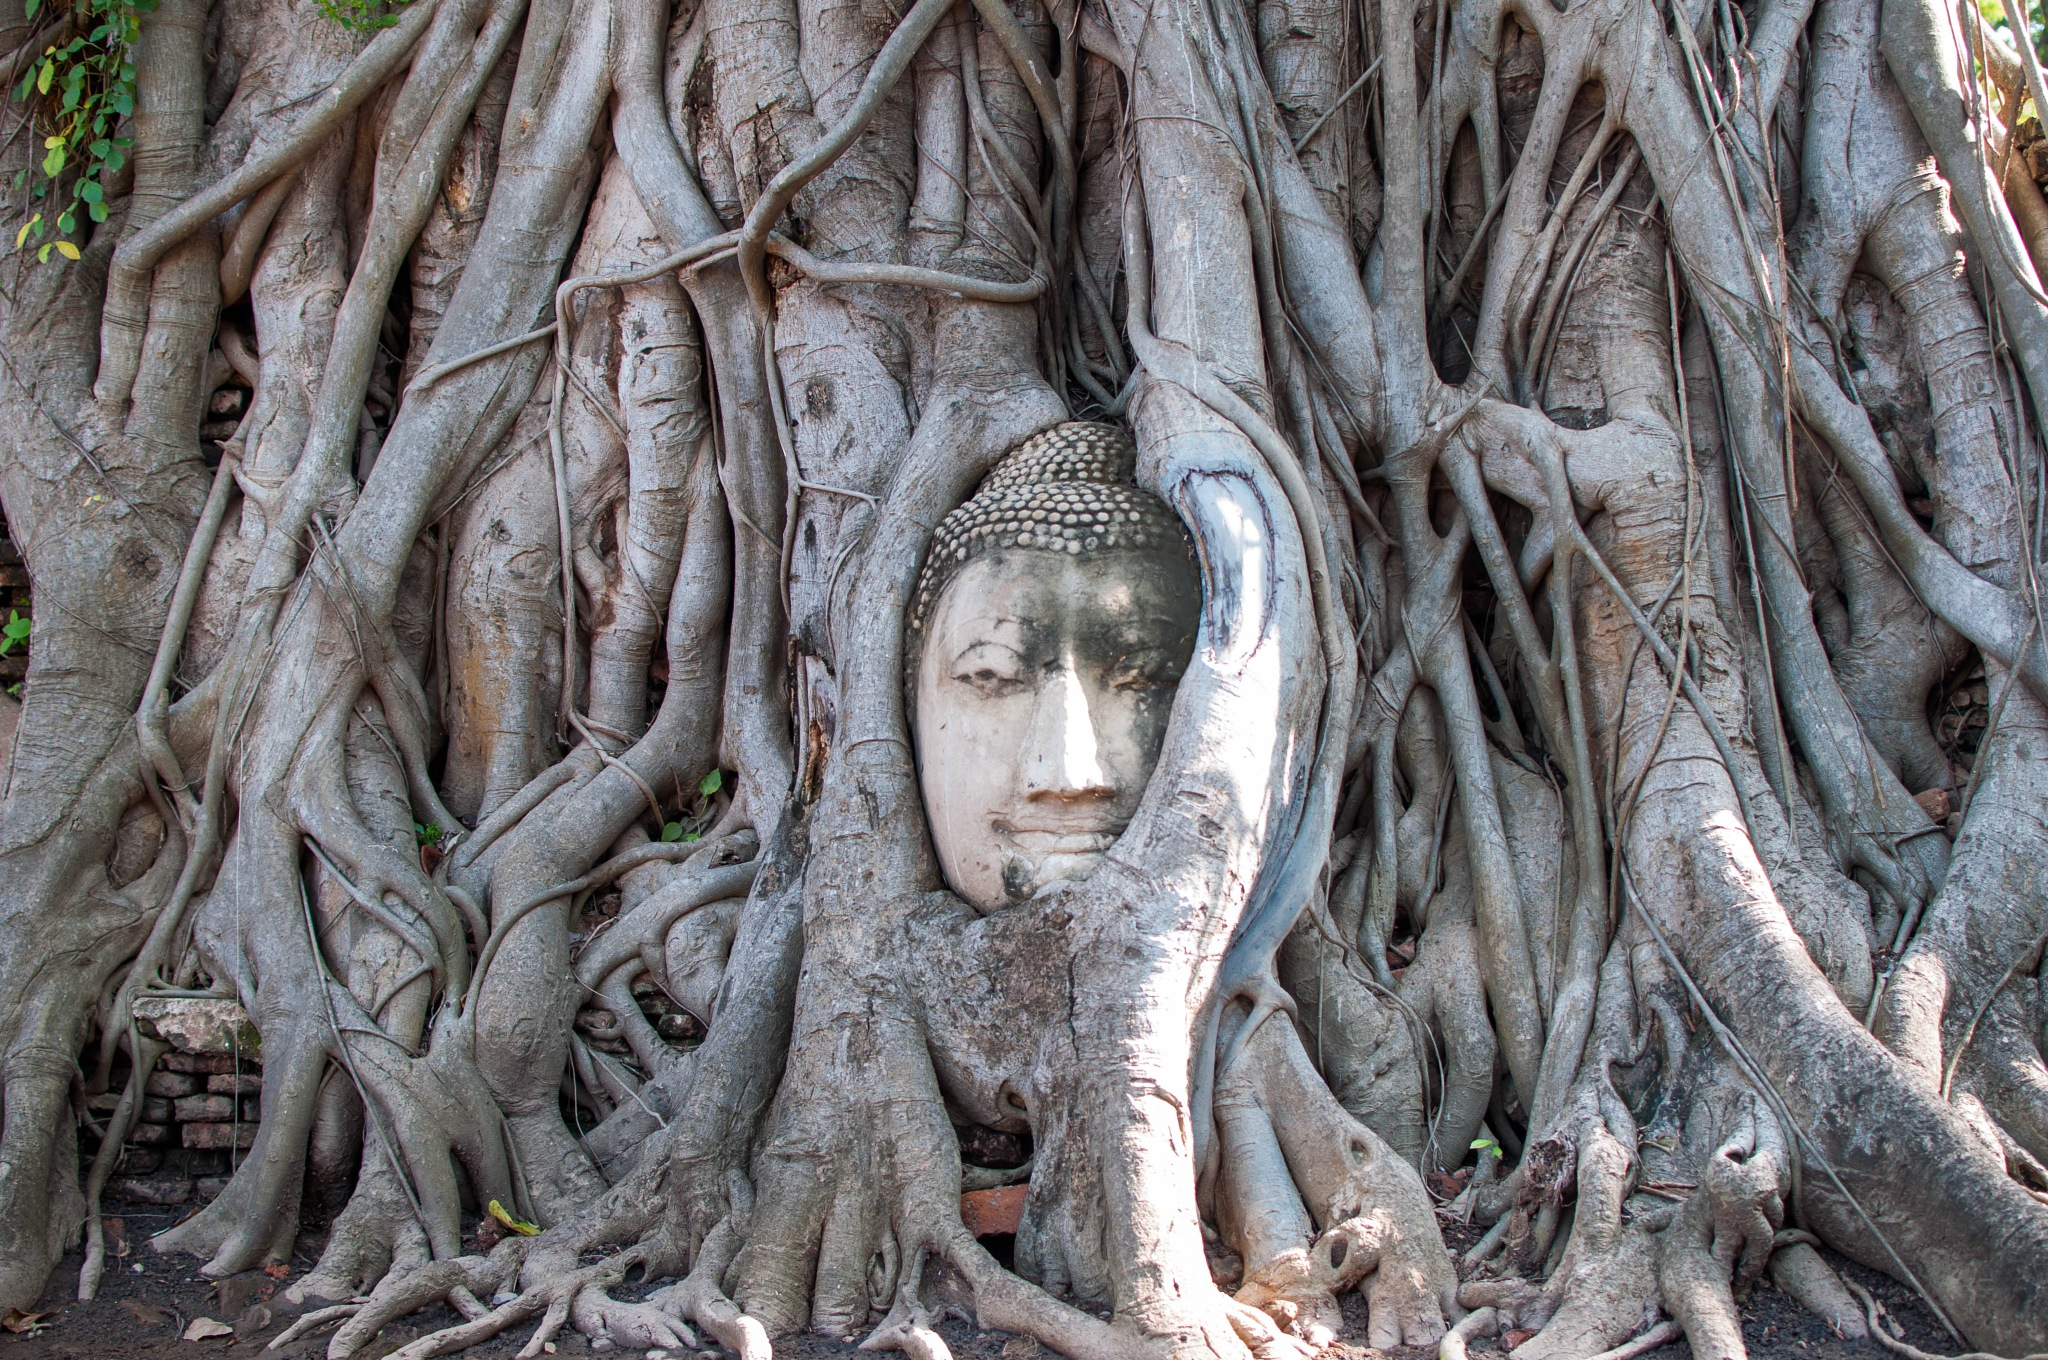 Buddha Head in Banyan Tree by Natalie Chew